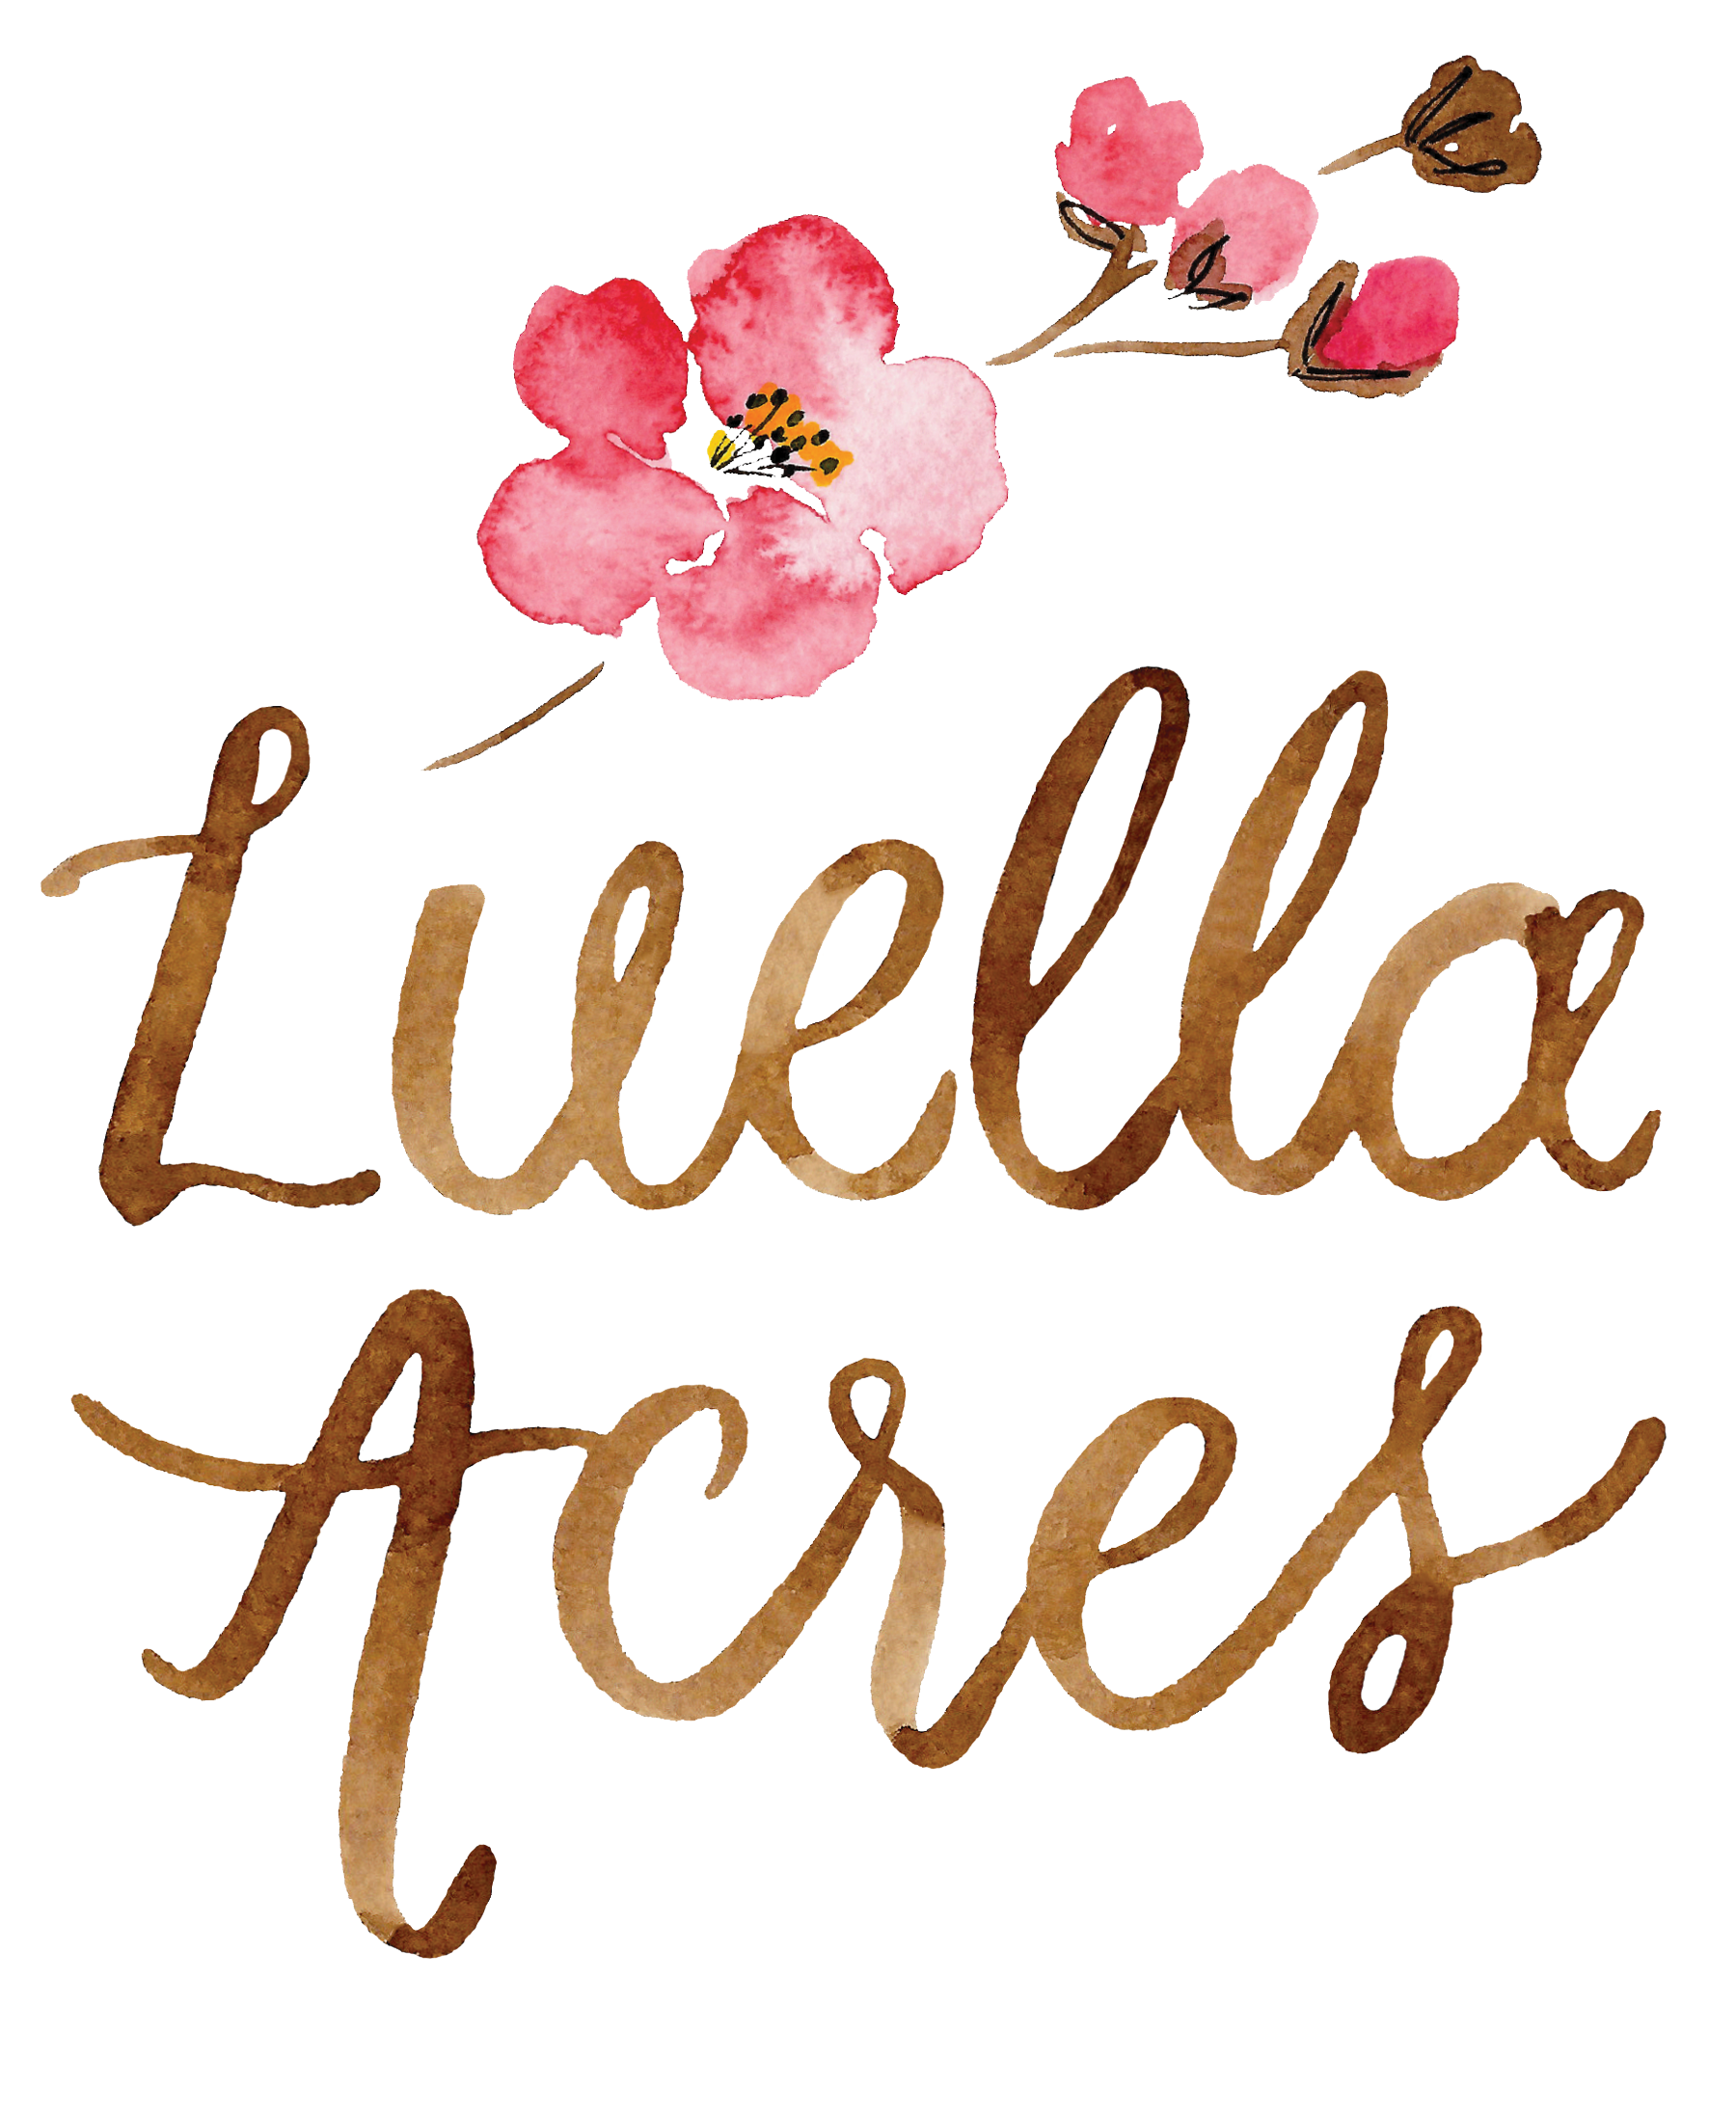 Luella-Acres-no-tagline.png